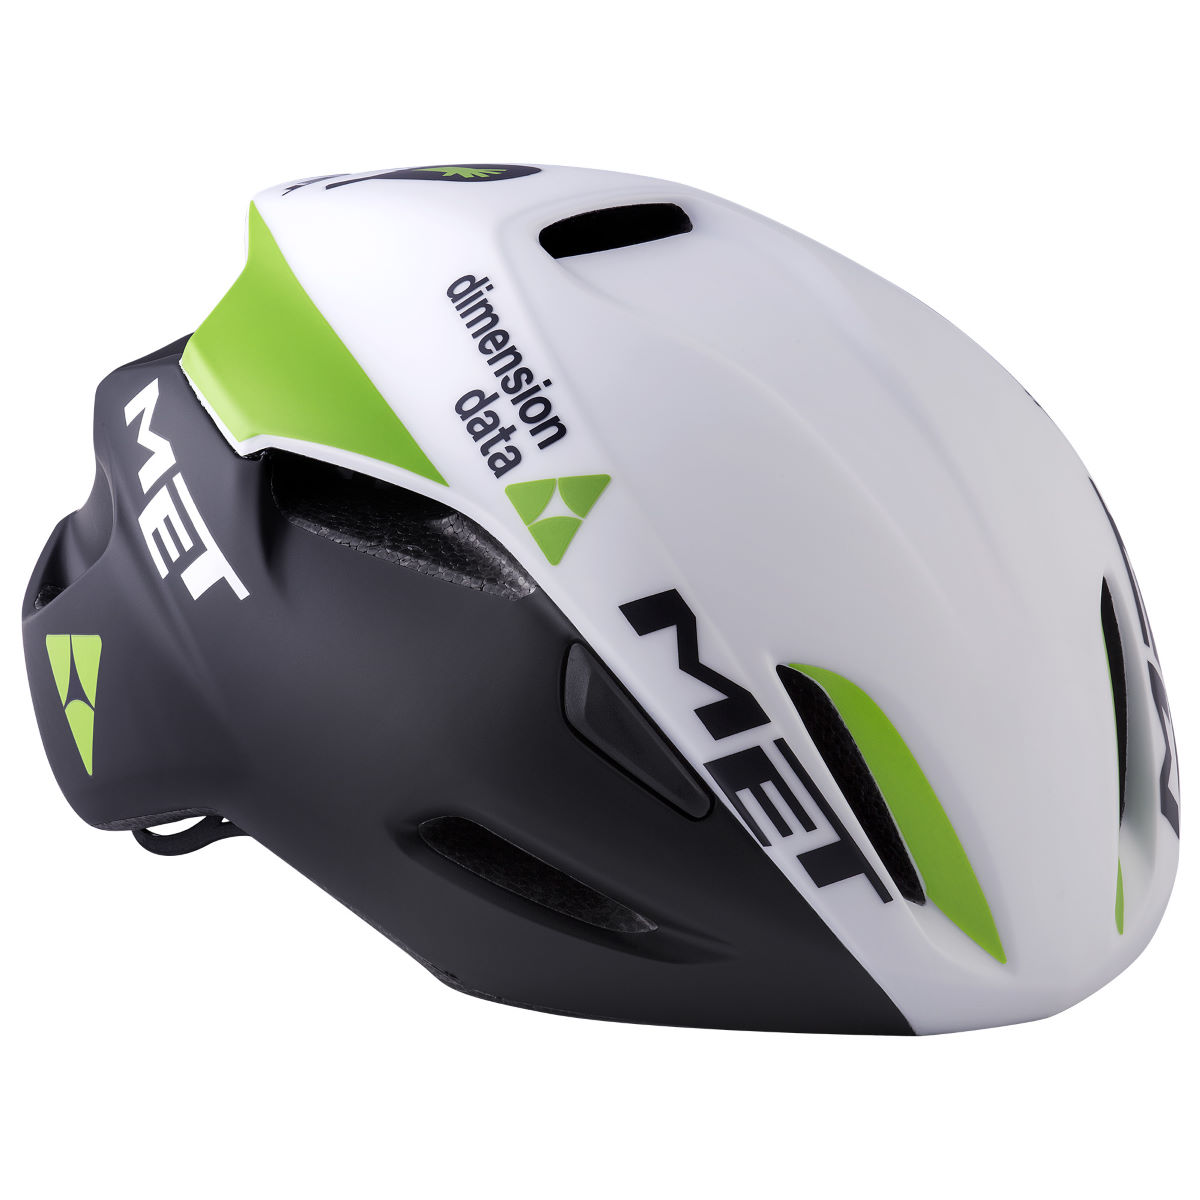 Casque de route MET Dimension Data Manta Aero - Large